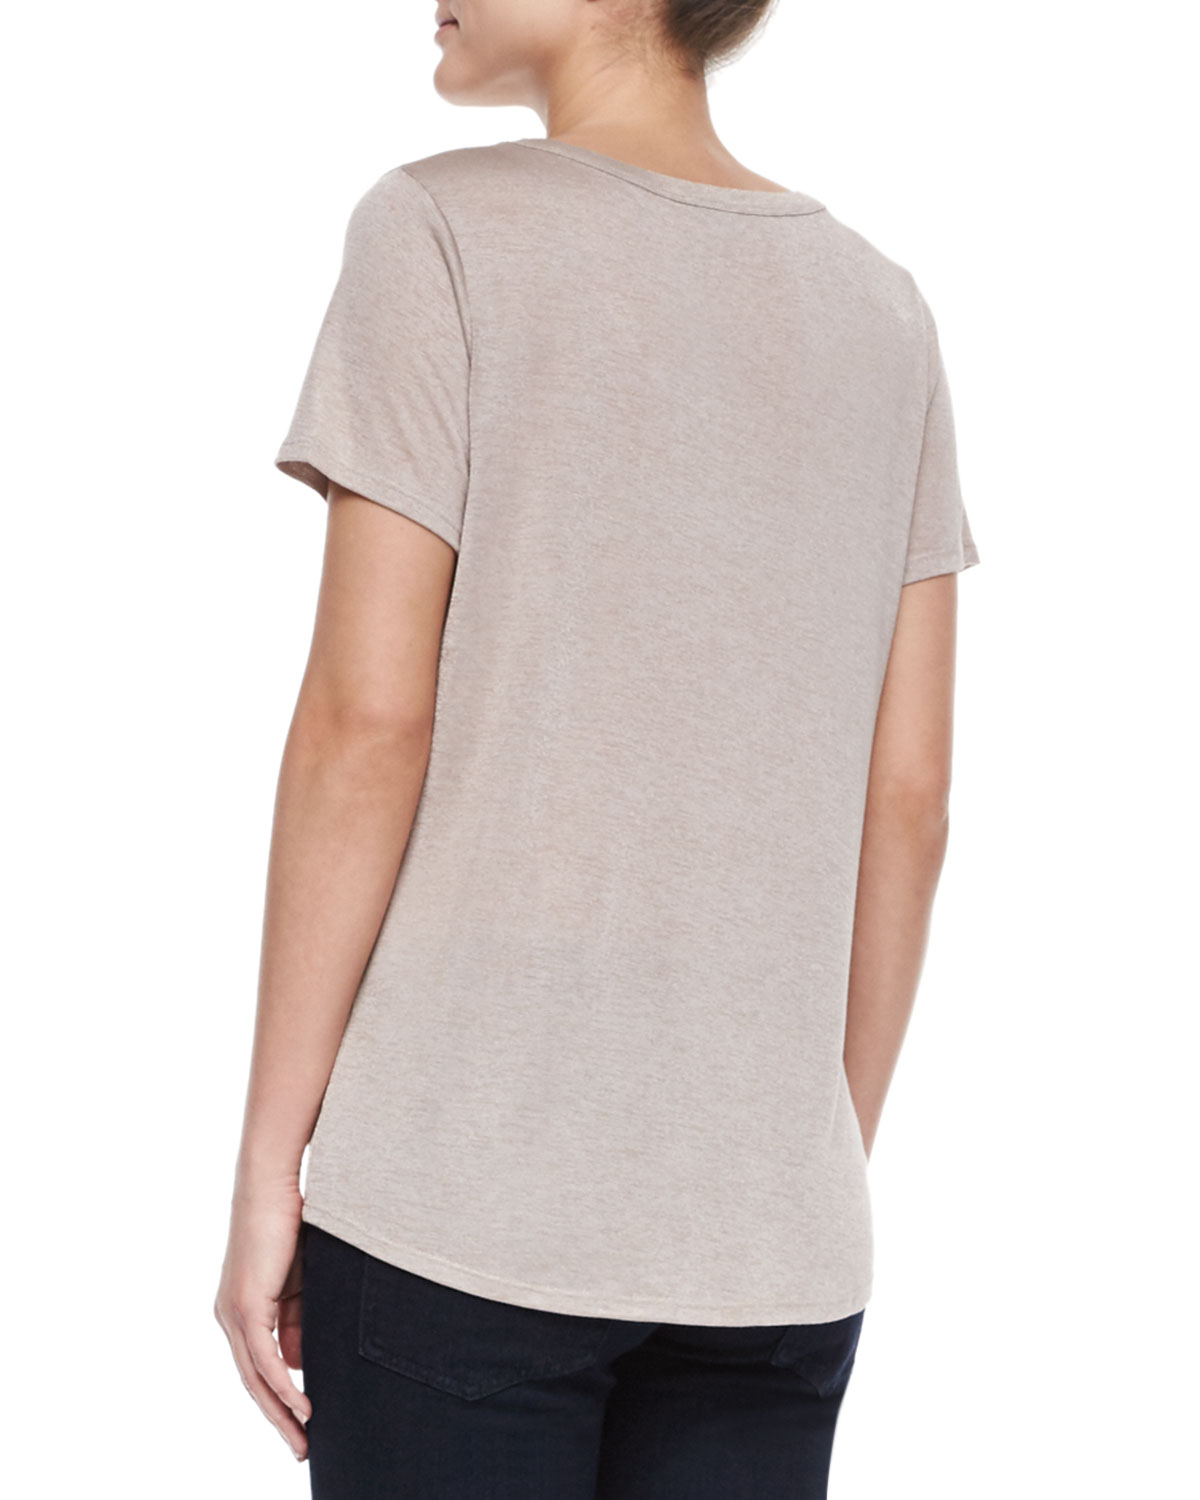 Lyst vince short sleeve scoop neck tee in gray for Vince tee shirts sale